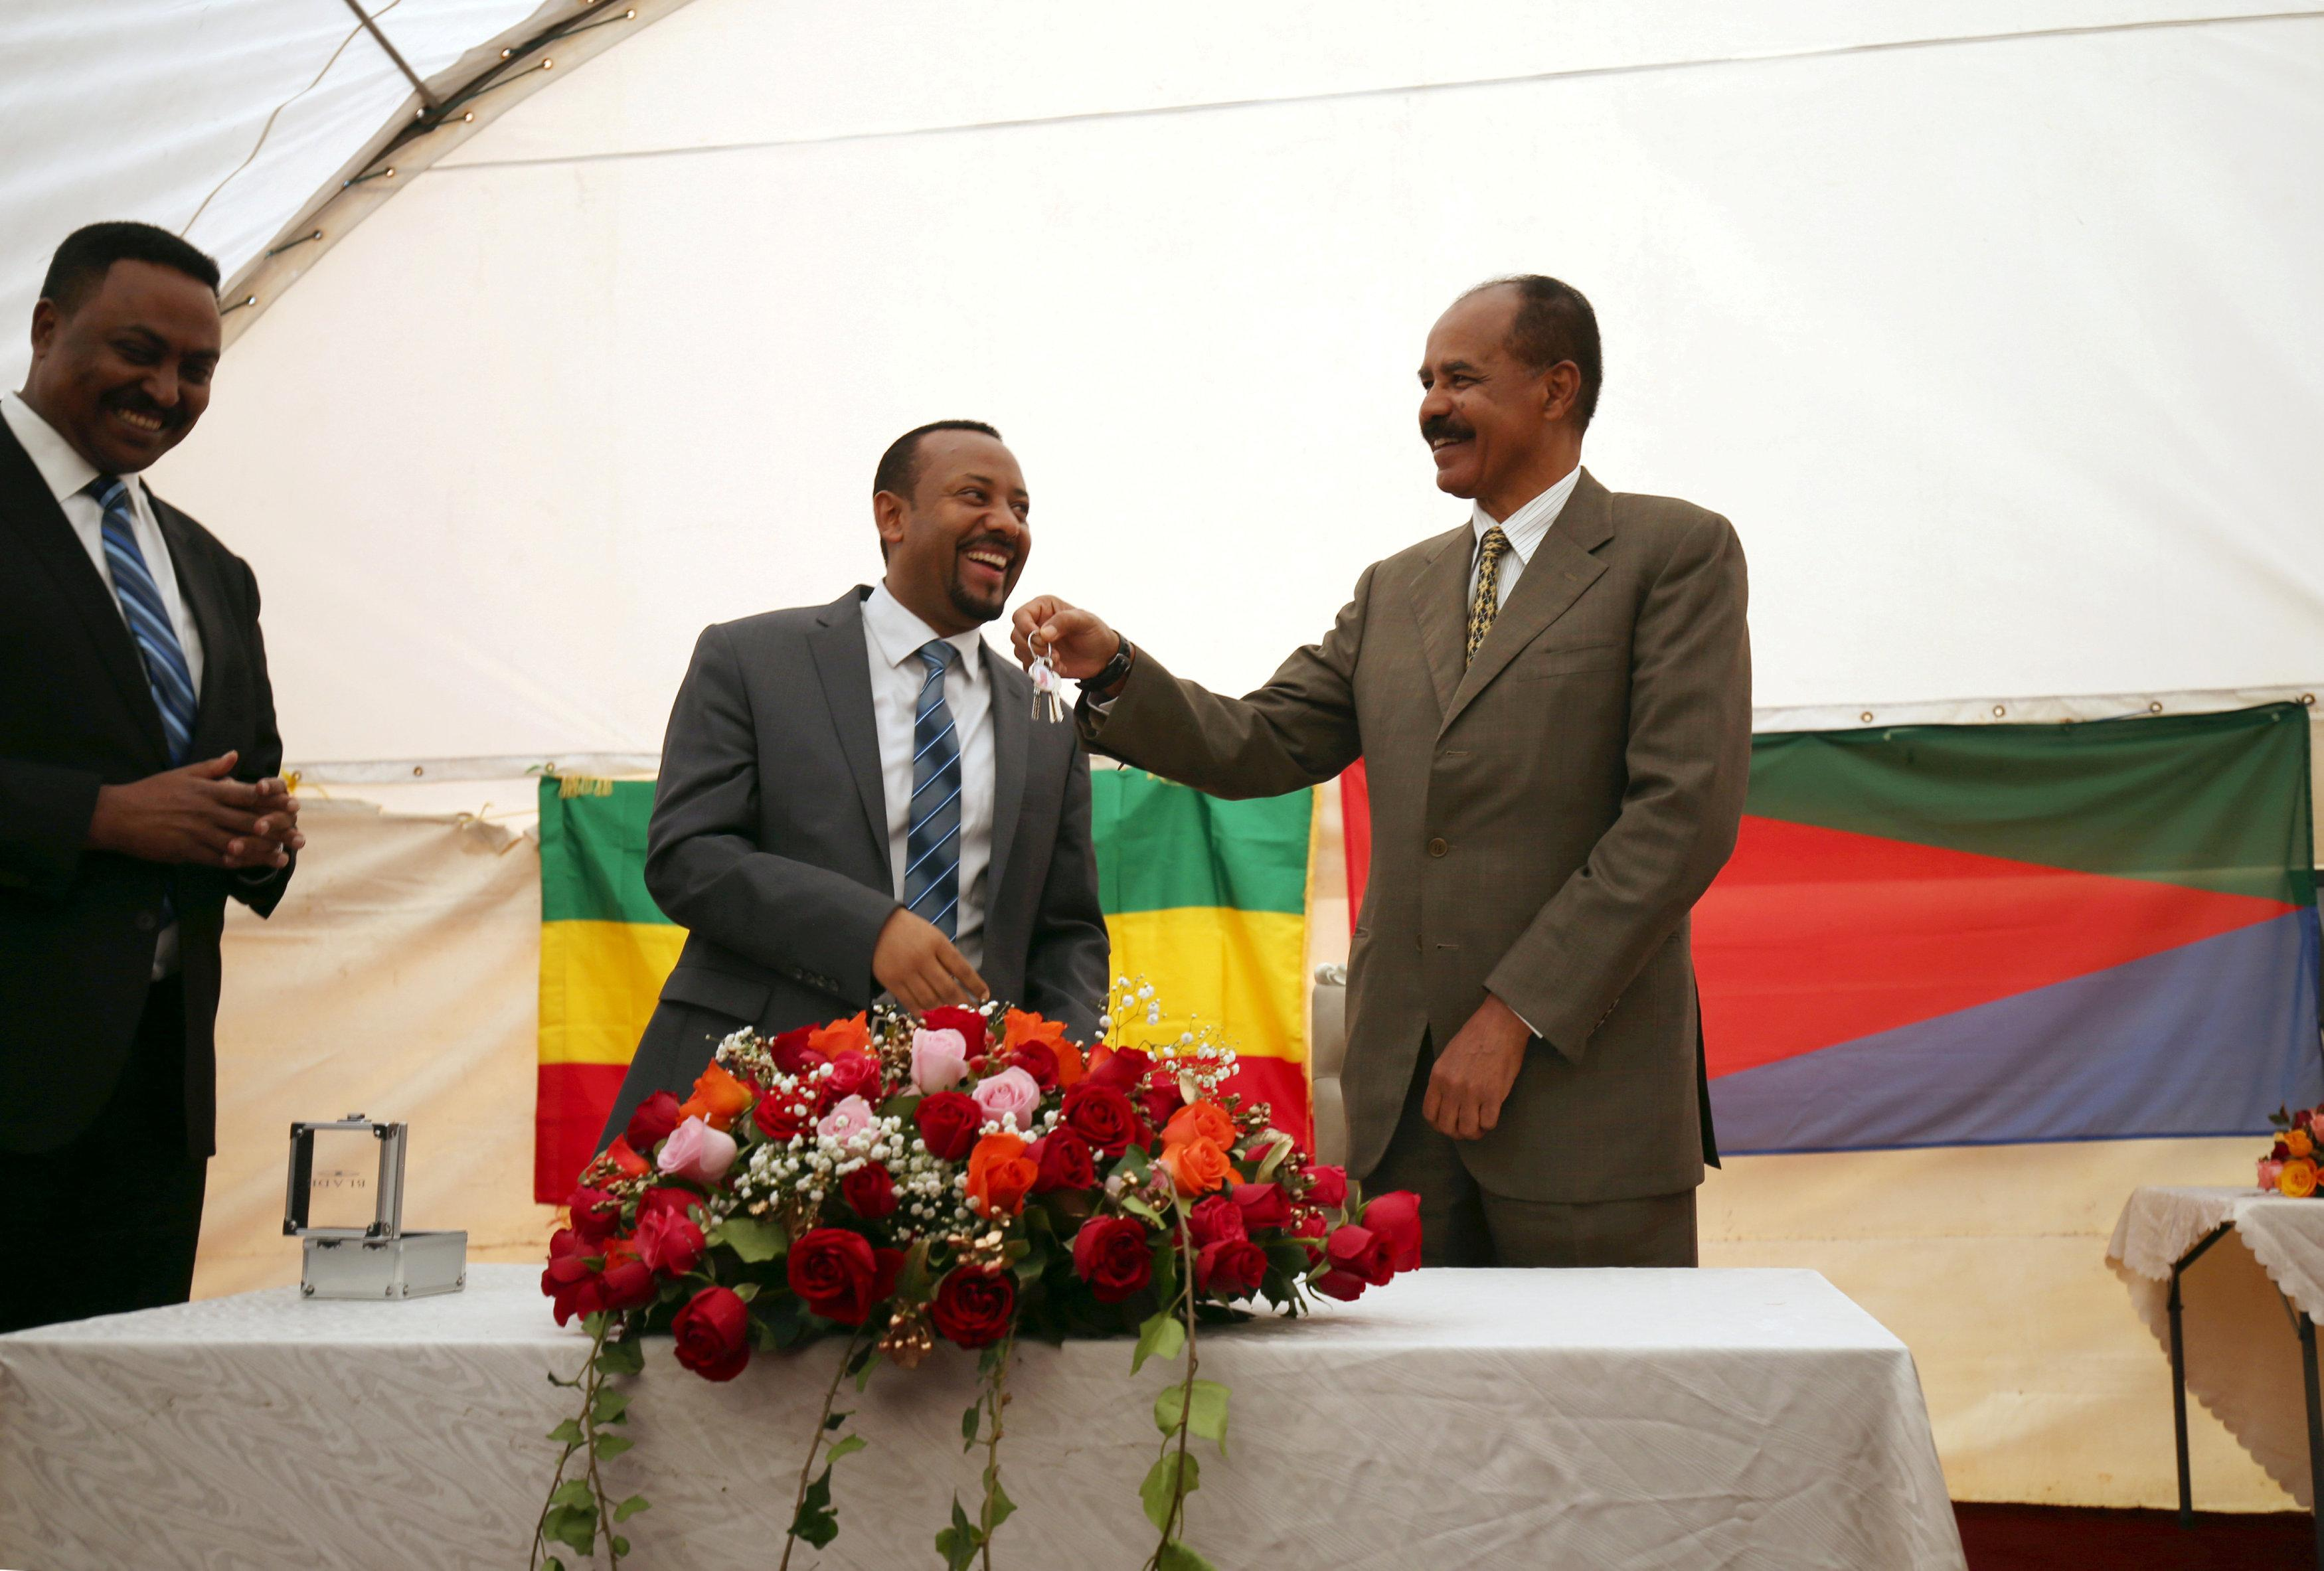 Eritrea's President, Isaias Afwerki receives a key from Ethiopia's Prime Minister, Abiy Ahmed during the Inauguration ceremony marking the reopening of the Eritrean Embassy in Addis Ababa, Ethiopia July 16, 2018. Tiksa Negeri